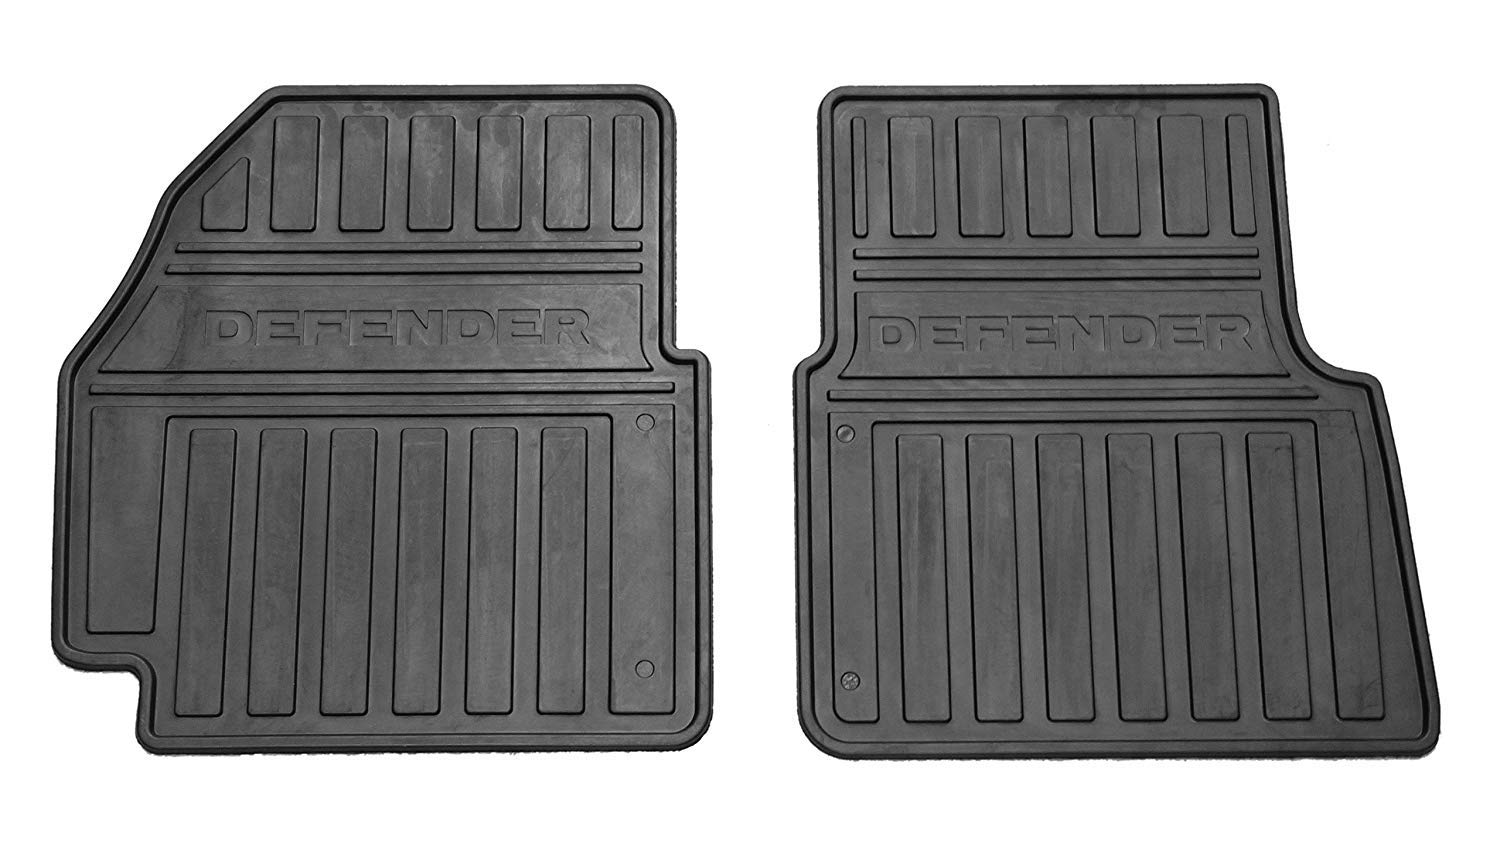 Land Rover Defender New Genuine Tapis en caoutchouc VPLDS0147 2012-2014 avant